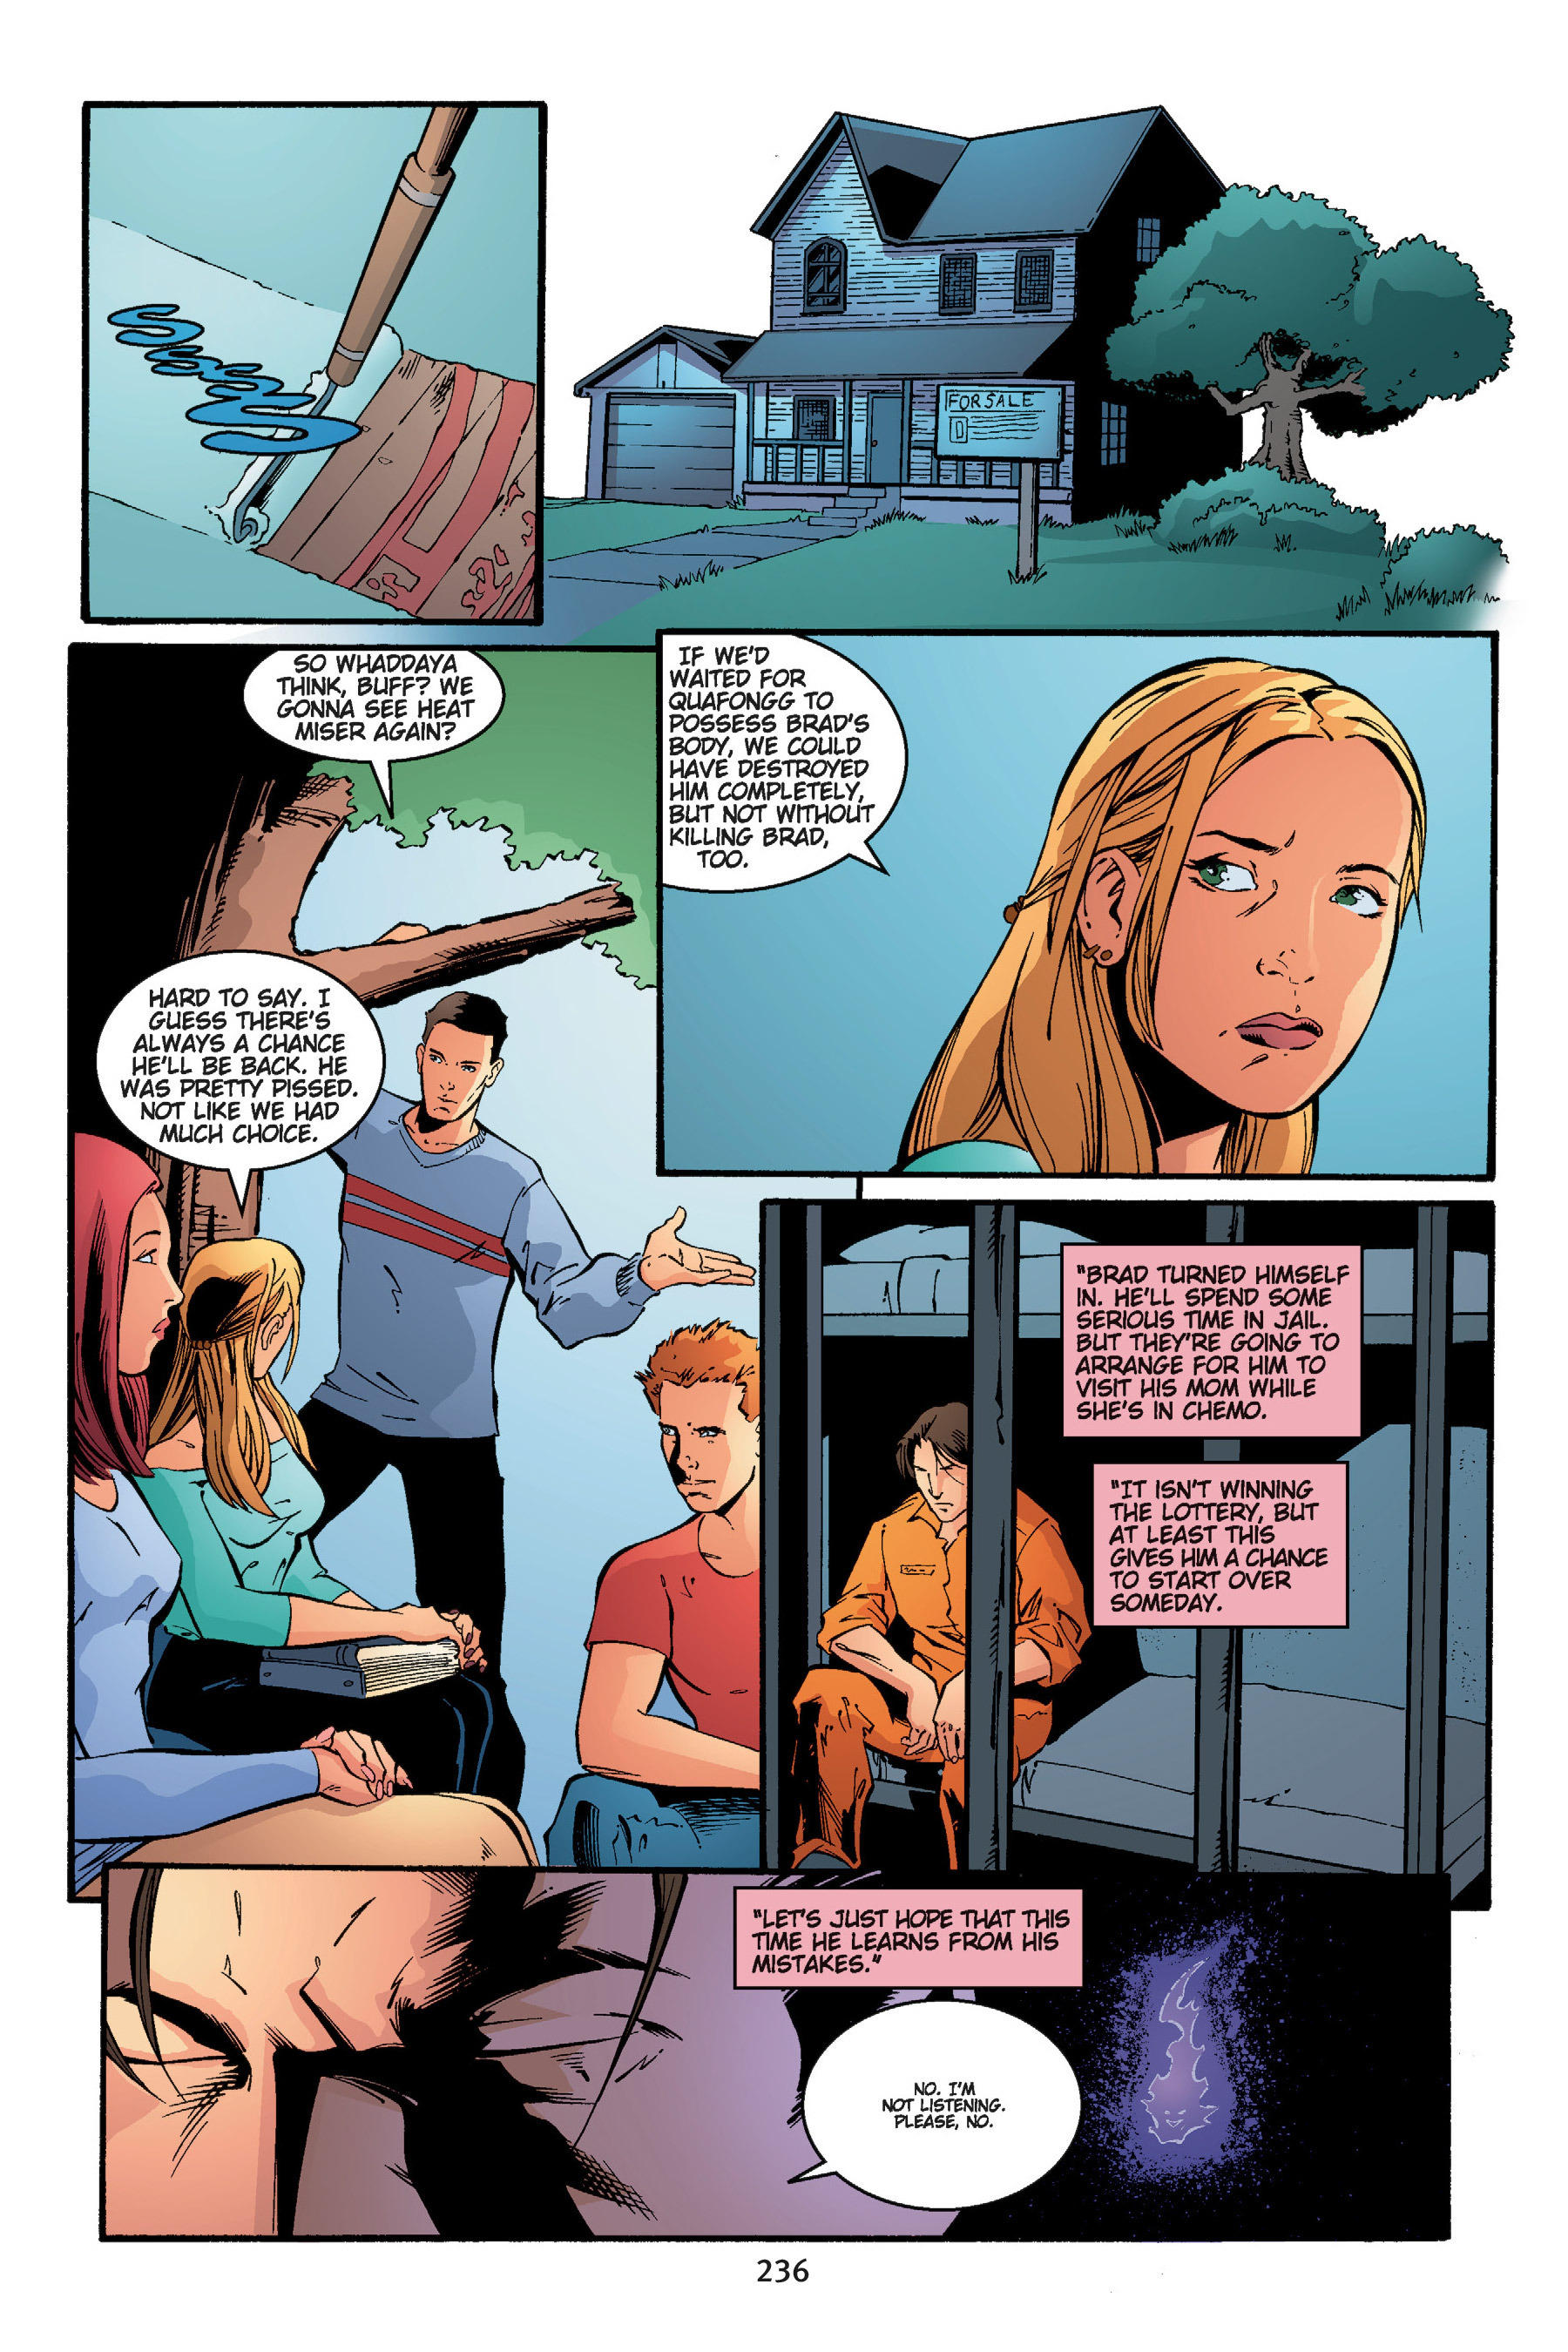 Read online Buffy the Vampire Slayer: Omnibus comic -  Issue # TPB 3 - 228